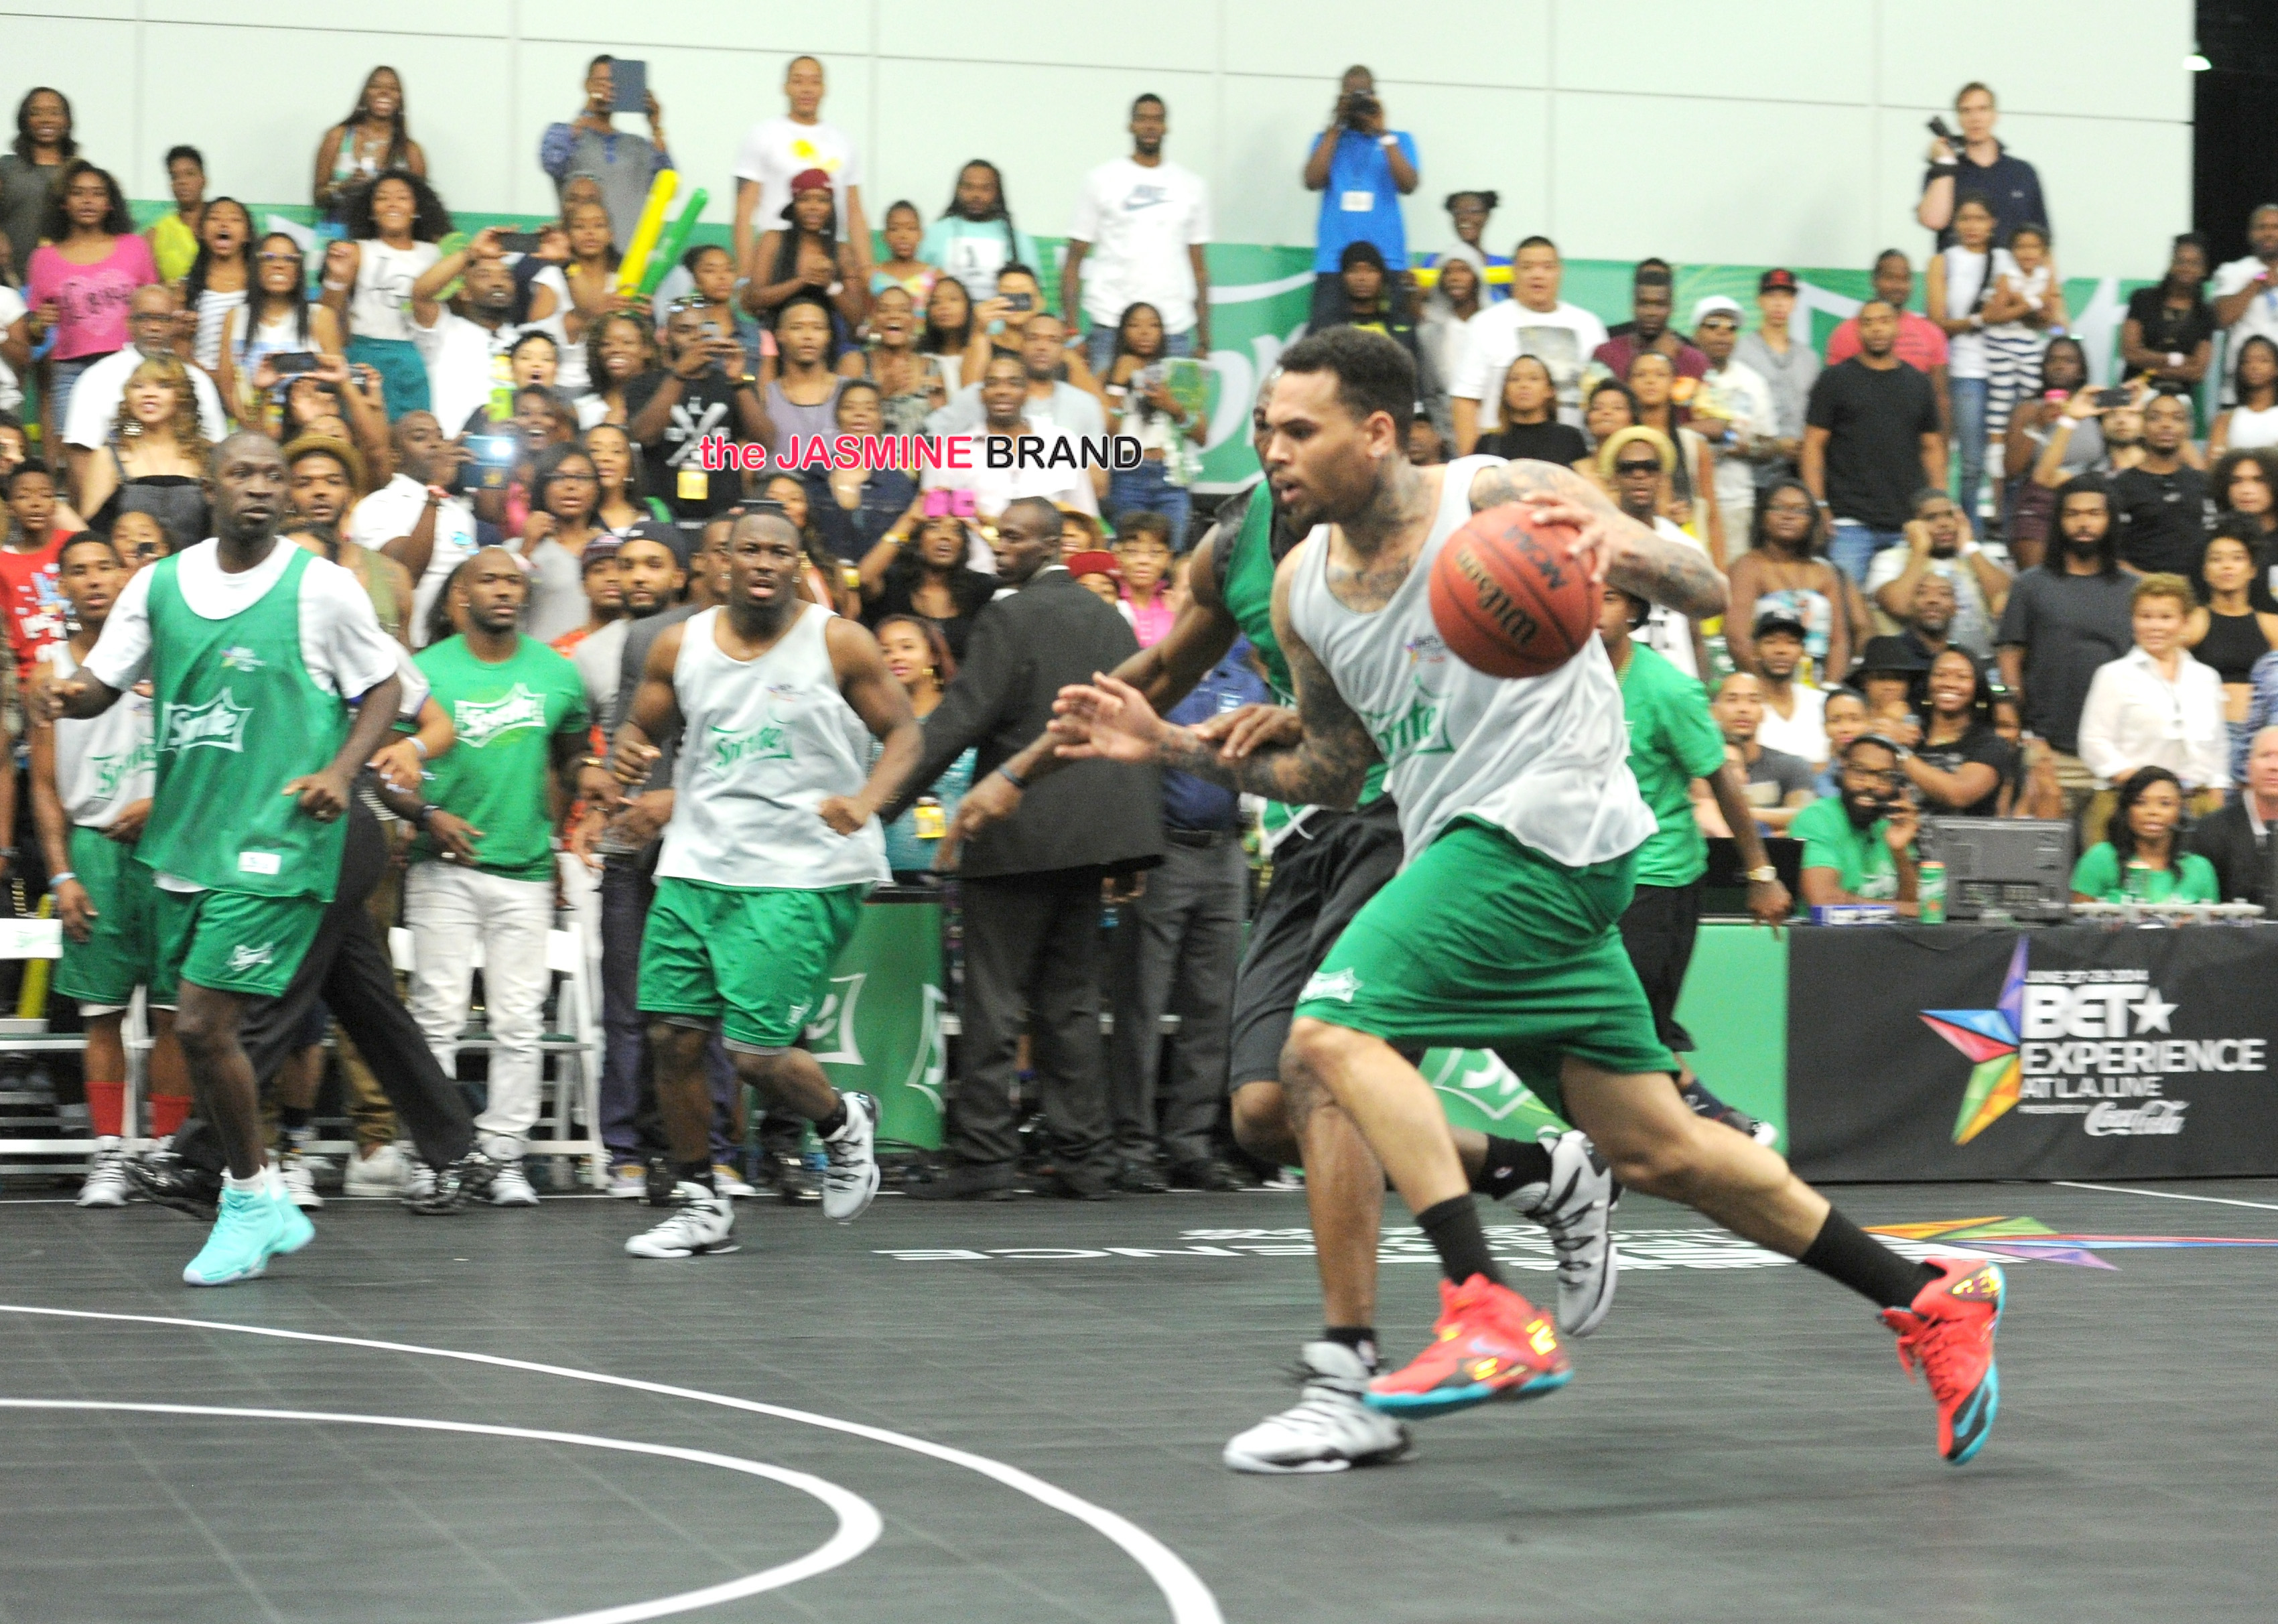 Allen Iverson Celebrity Basketball Game | The Liacouras Center